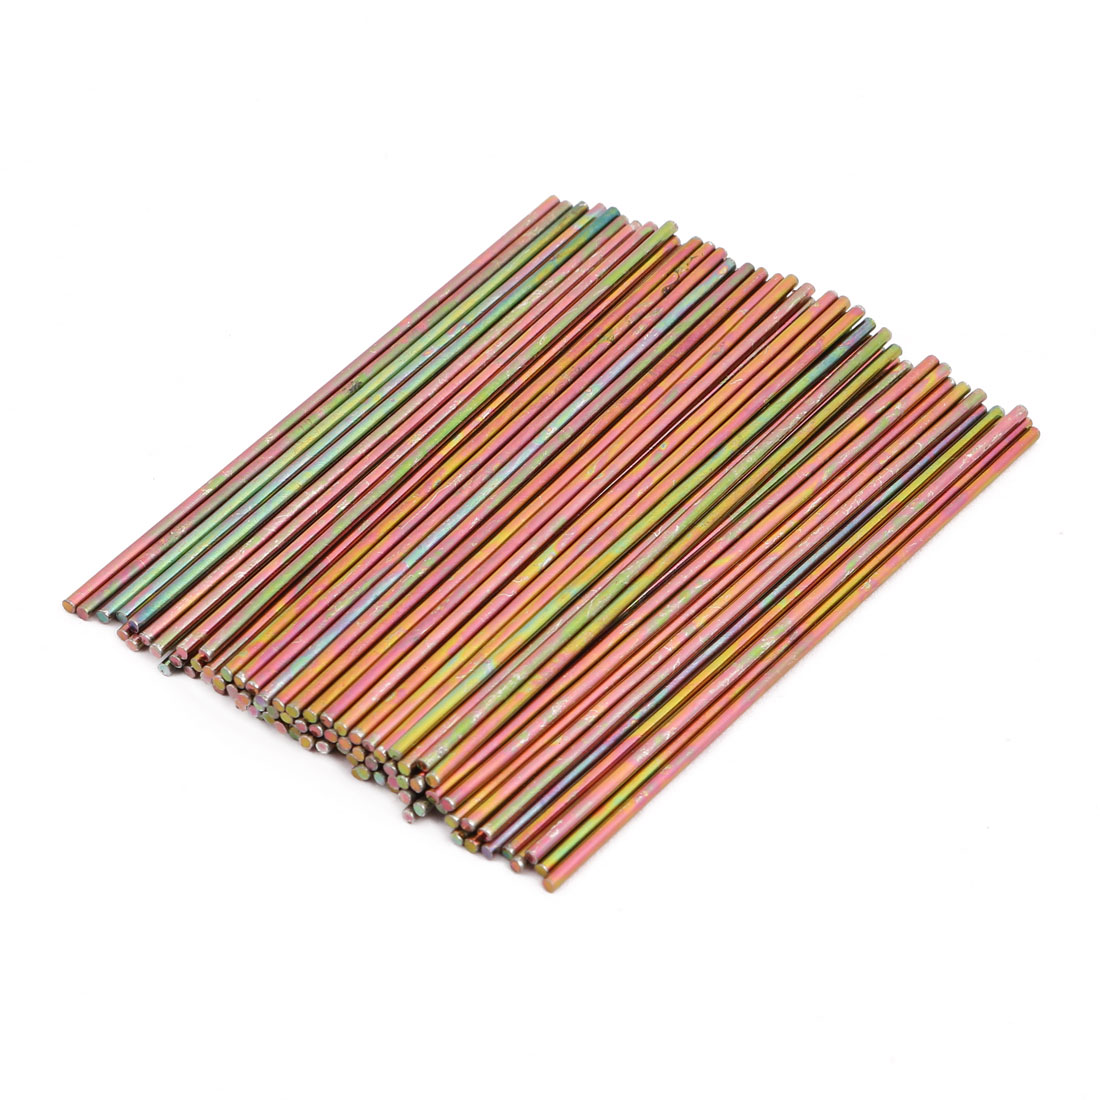 100Pcs Round Shaft Solid Durable Metal Rods Axles 1.4mm x 74mm